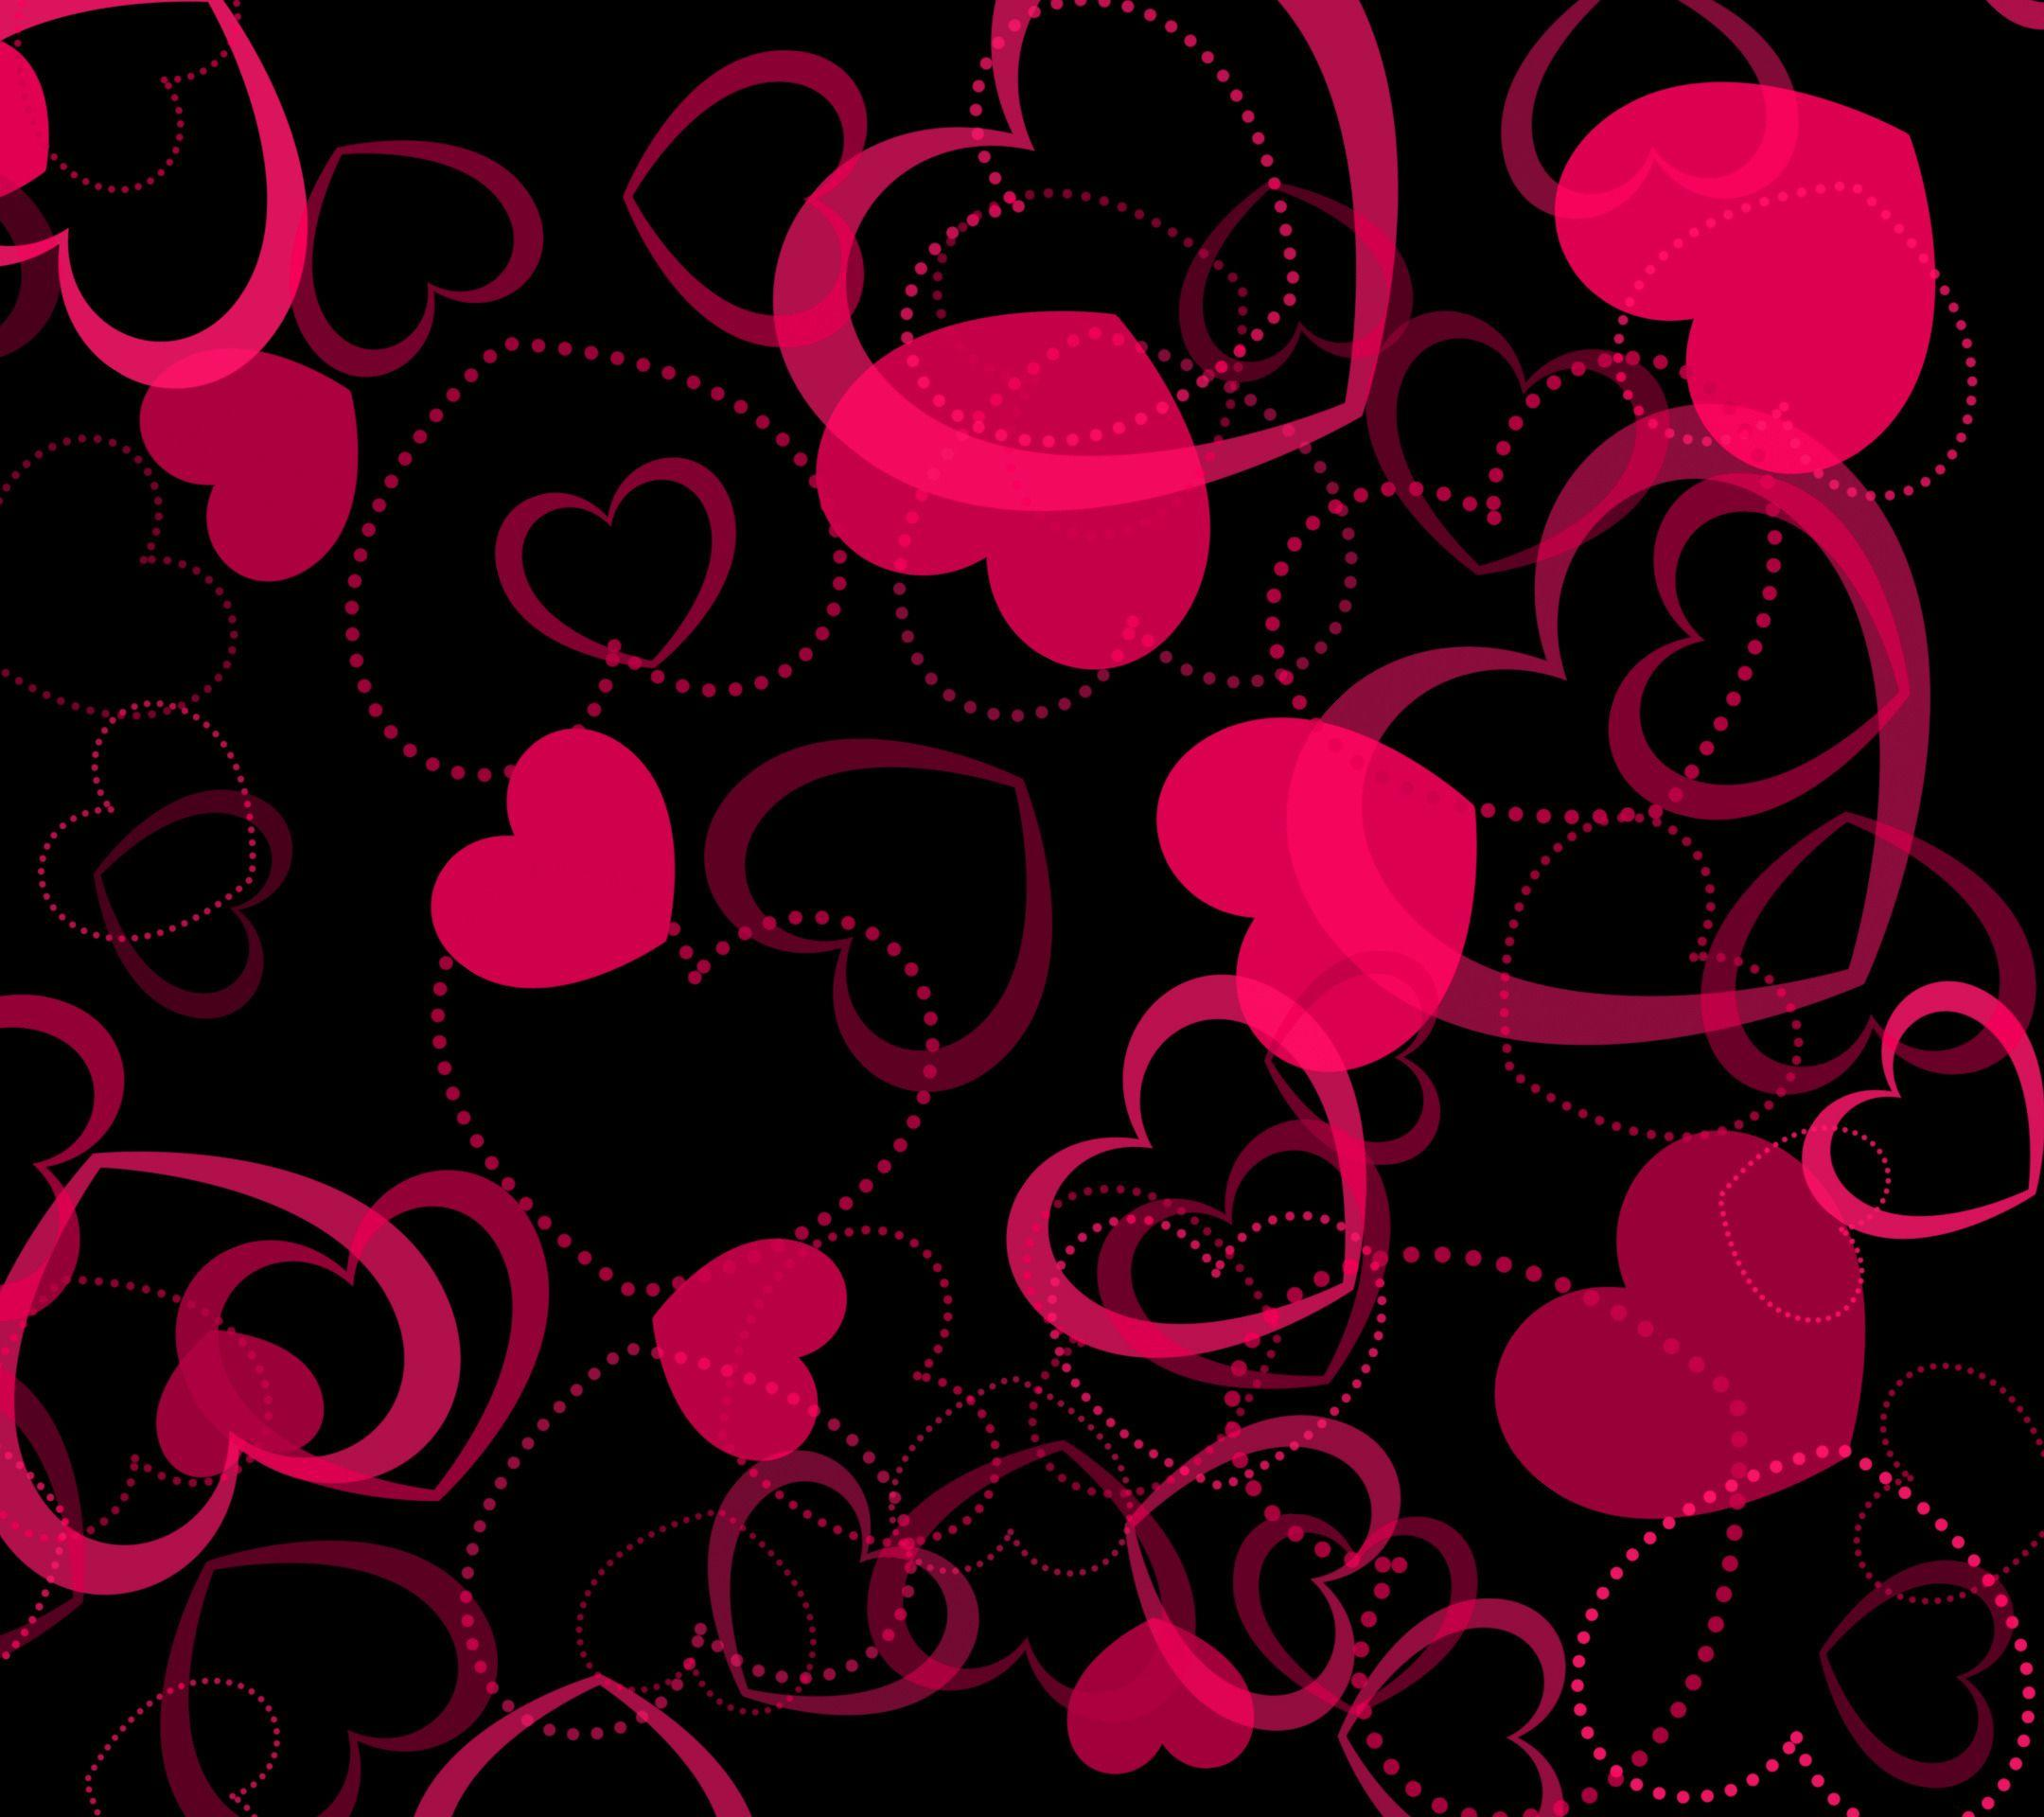 Pink Hearts Wallpapers - Wallpaper cave